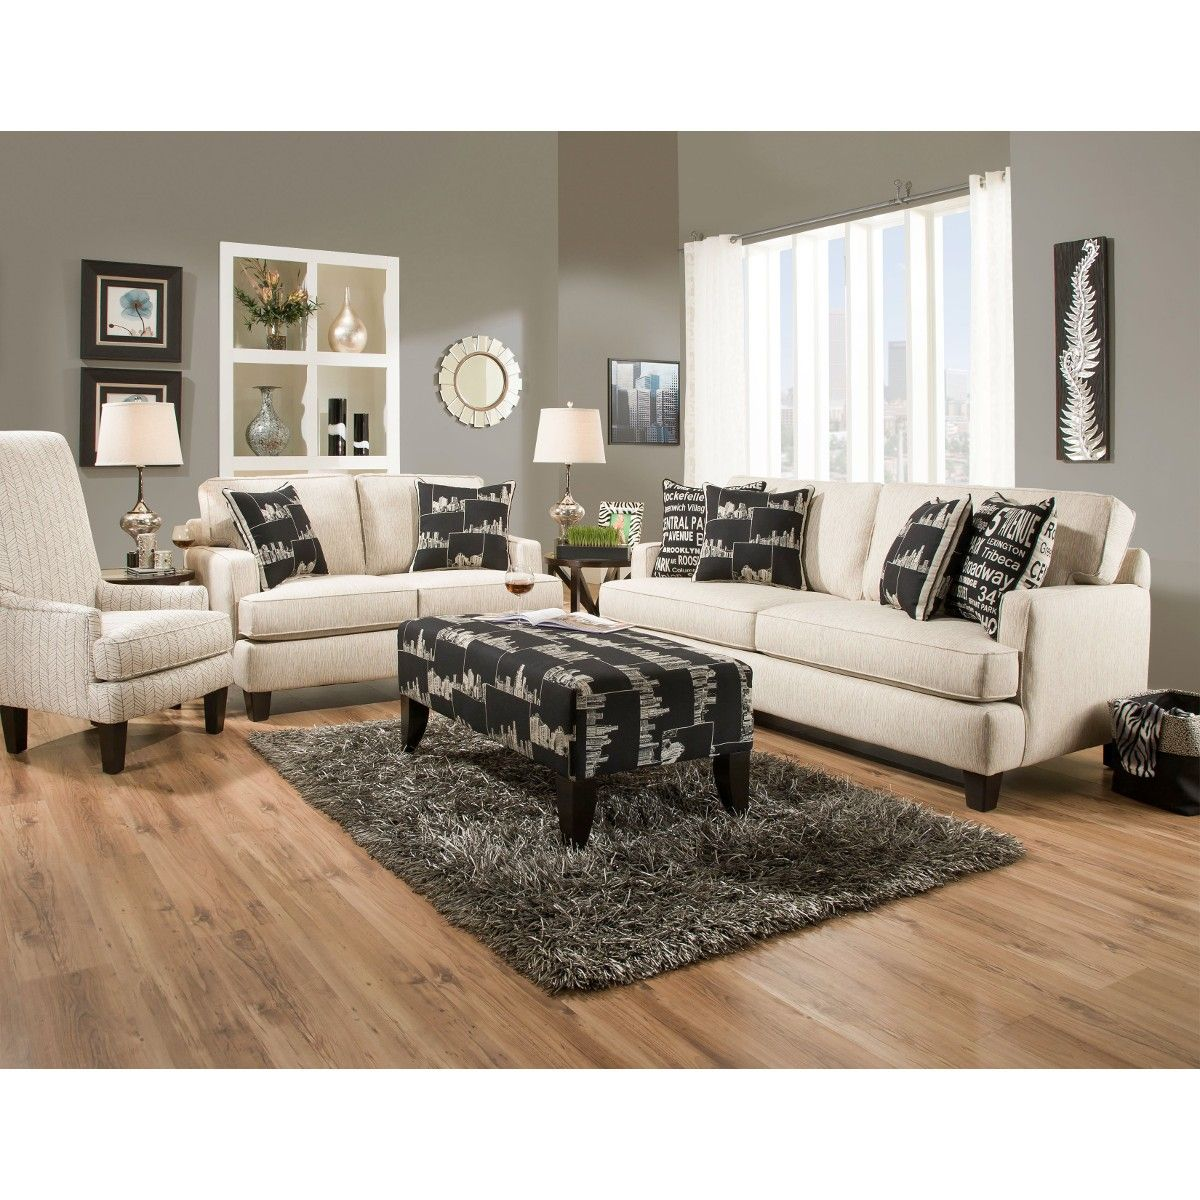 Conns Living Room Sets #conns #living  Furniture, Living room